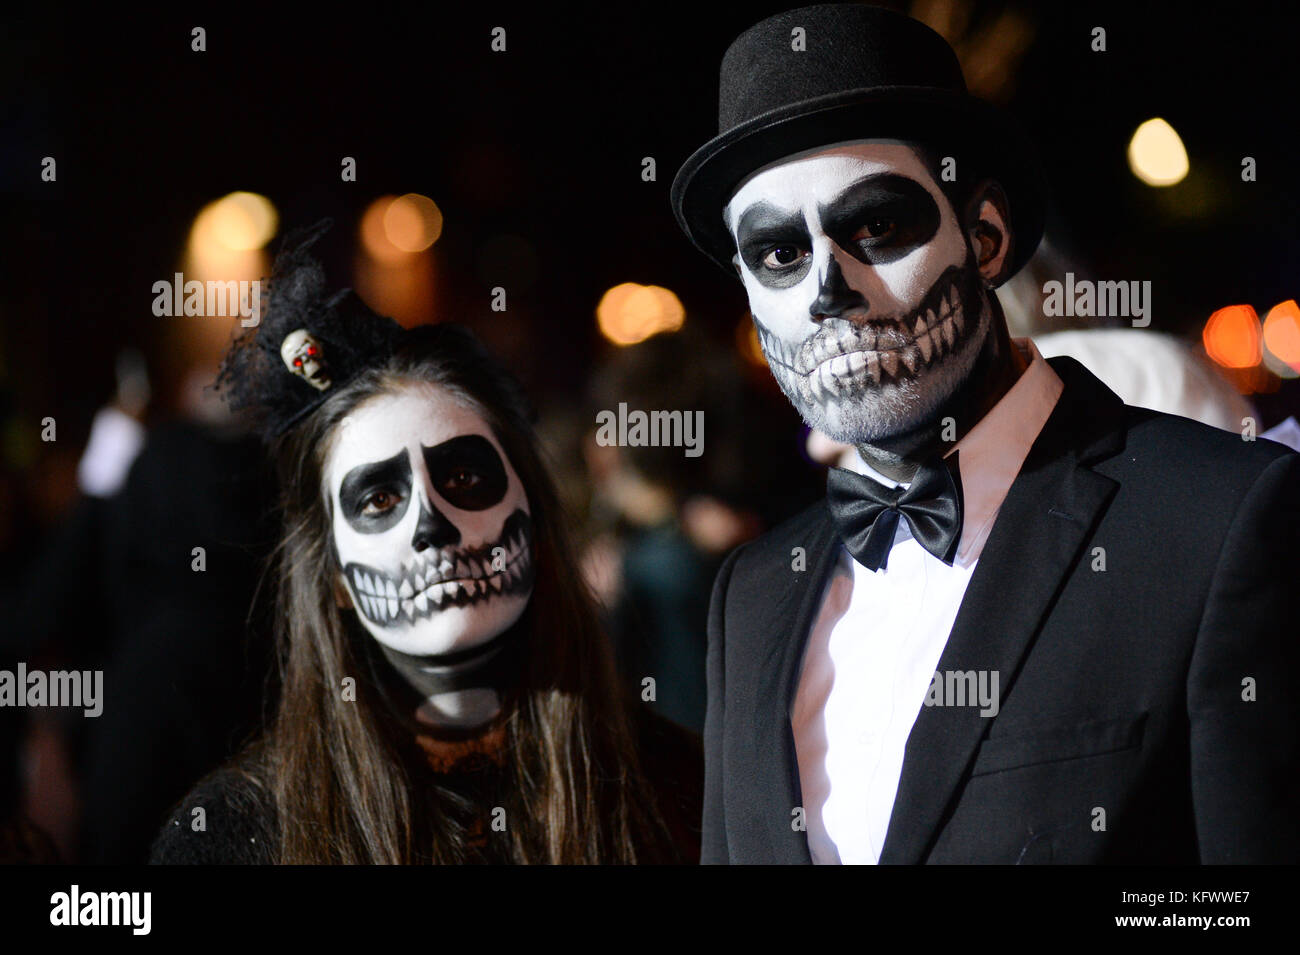 Participants wearing different costumes march during Halloween Parade in Lower Manhattan of New York United State on October 31 2017. credit Erik ...  sc 1 st  Alamy & Participants wearing different costumes march during Halloween ...